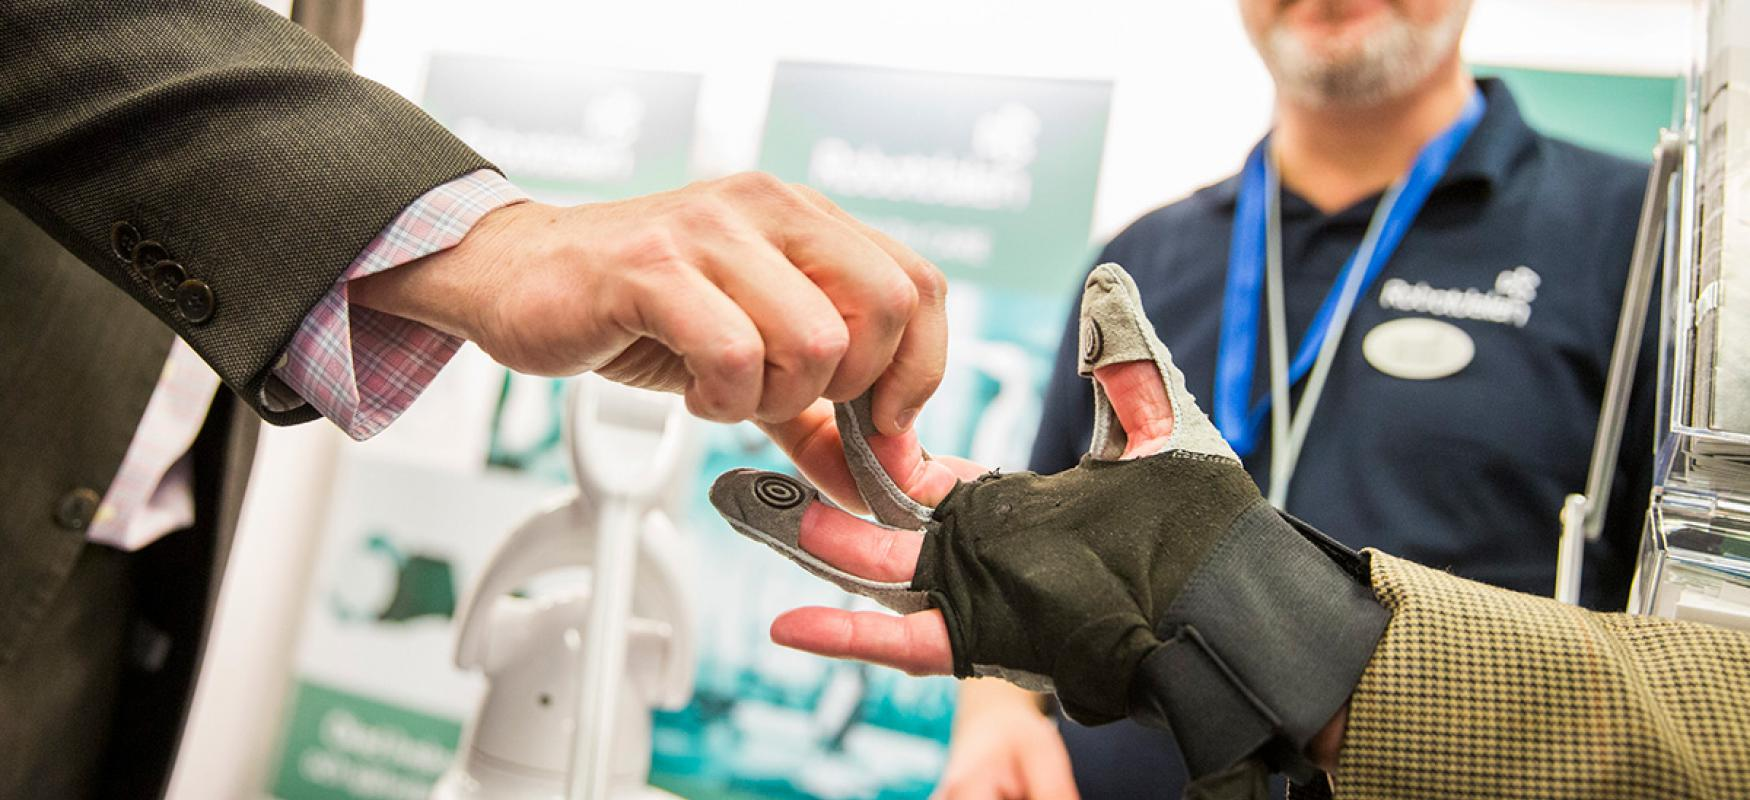 Man testing a health technology device in the form of a glove at Vitalis 2018.